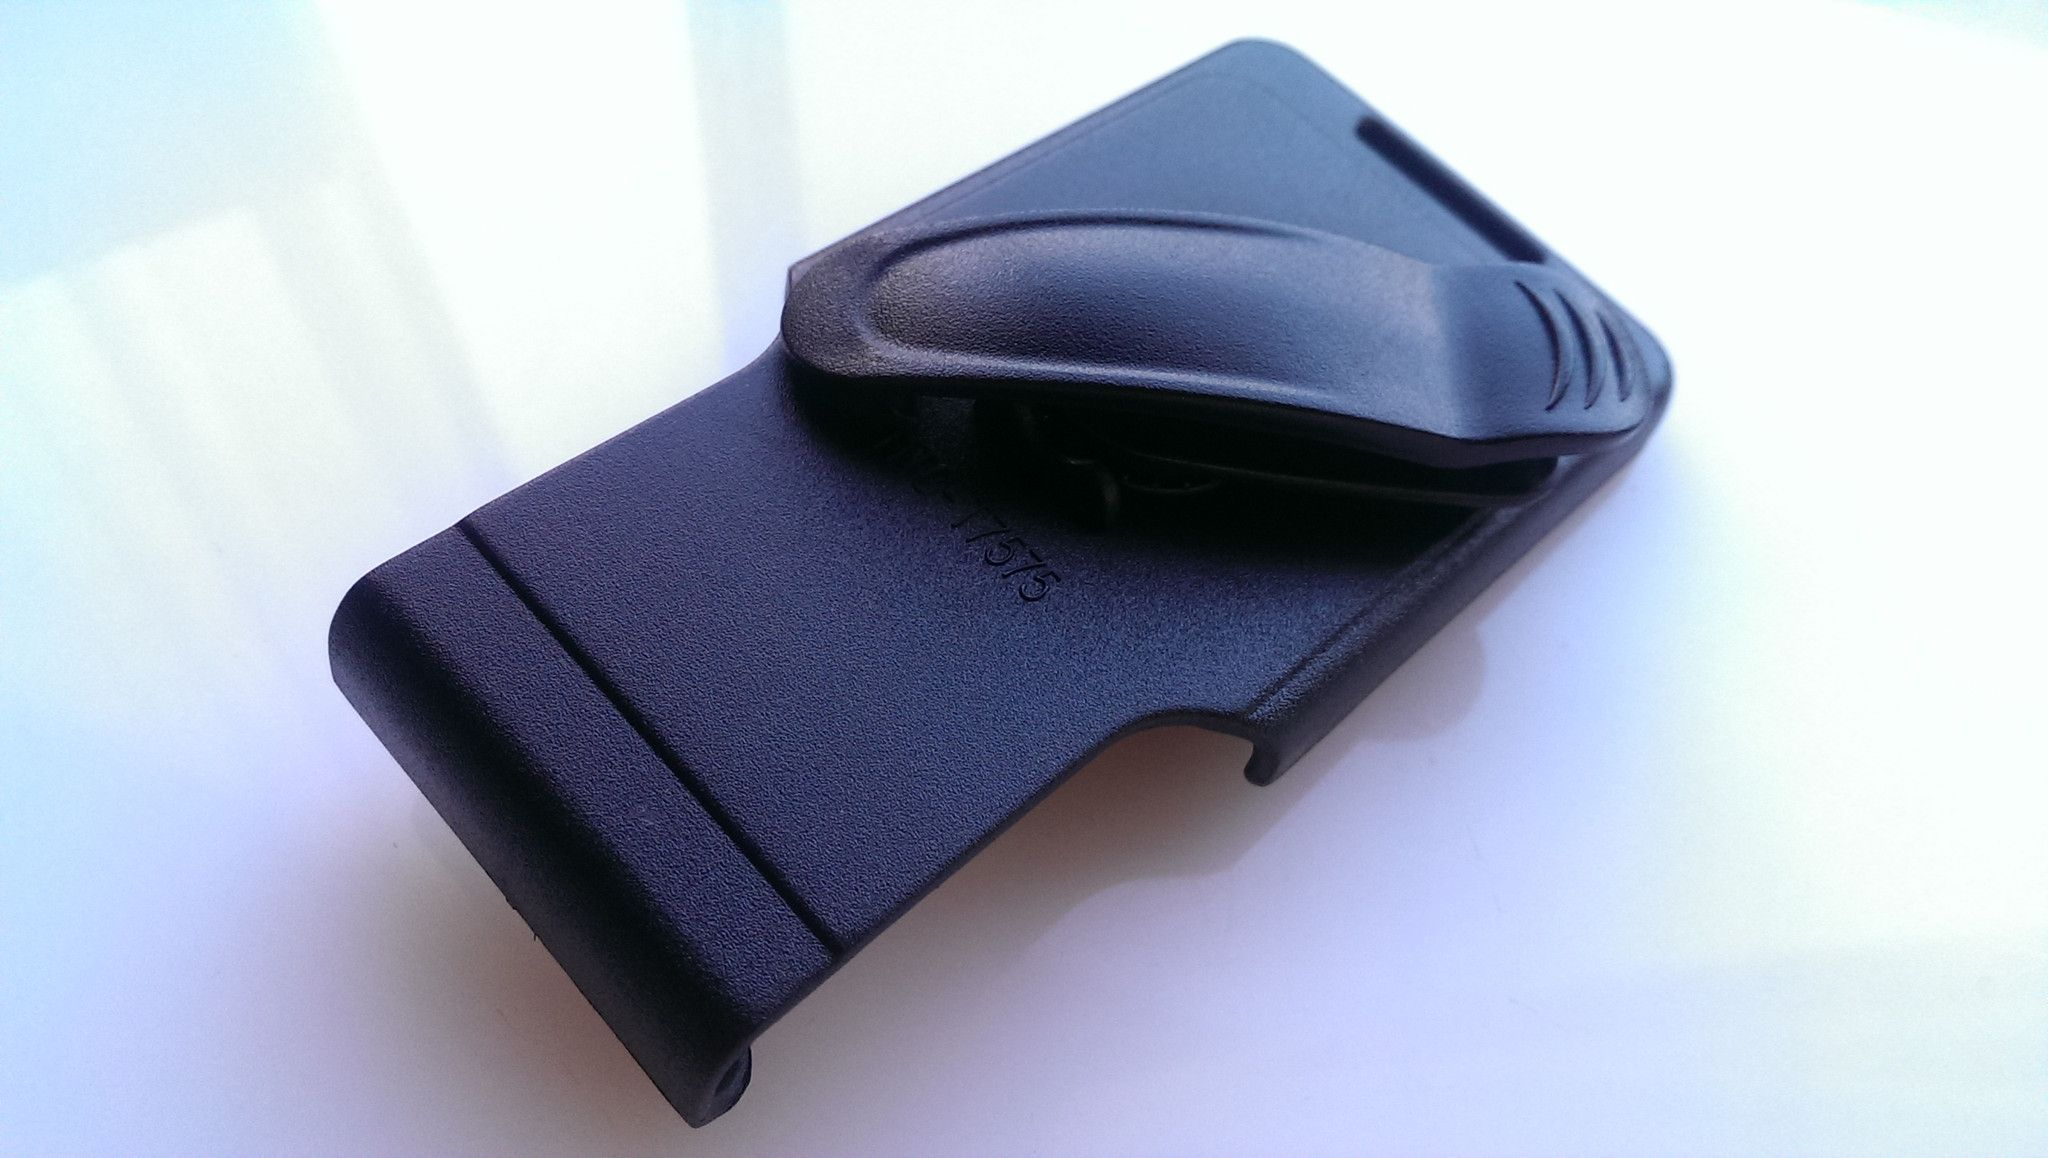 HTC Arrive 7 Pro t7575 Holster with Swivel Belt Clip